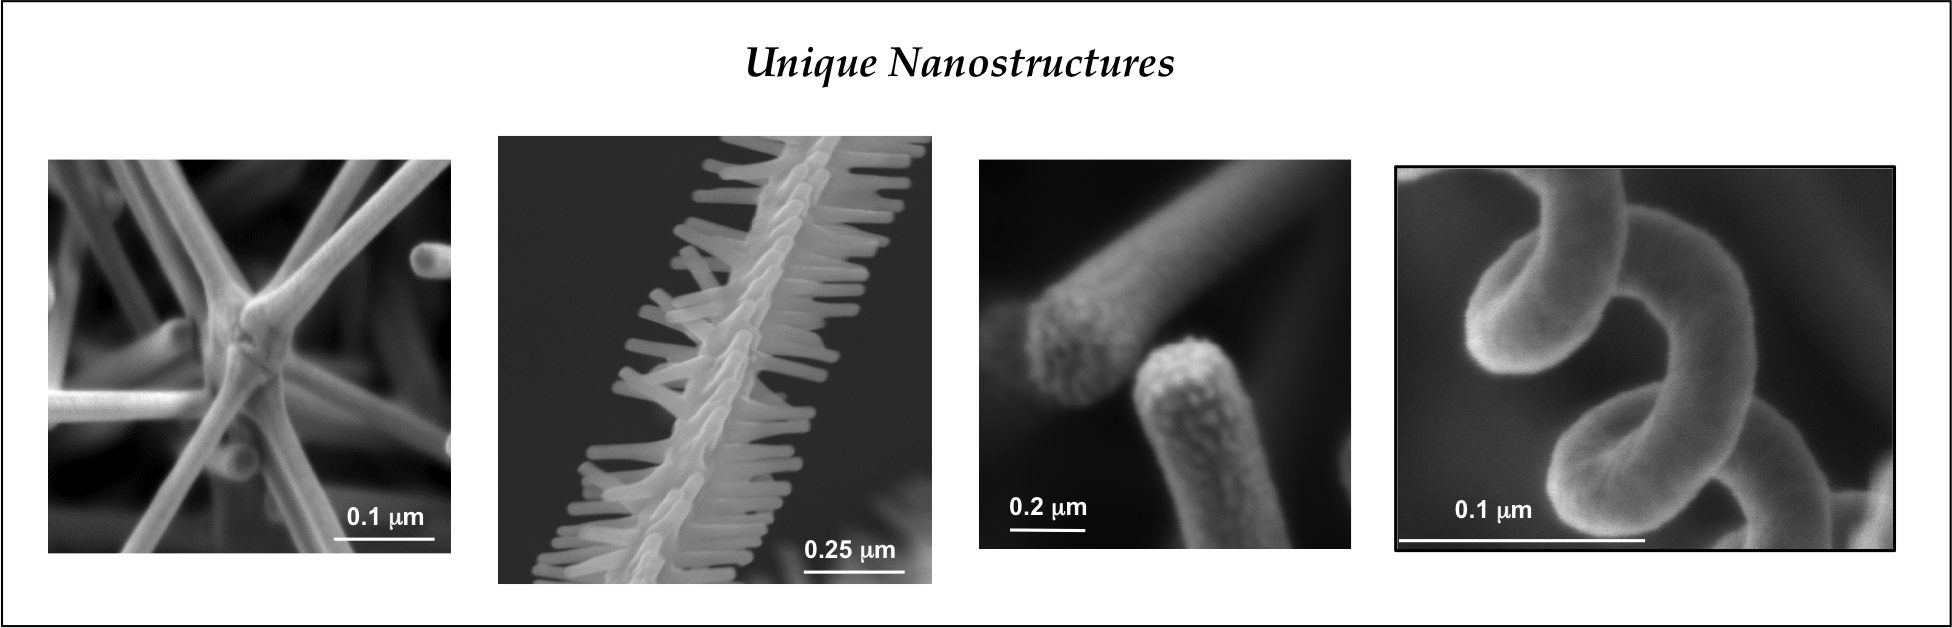 Unique nanostructure.png